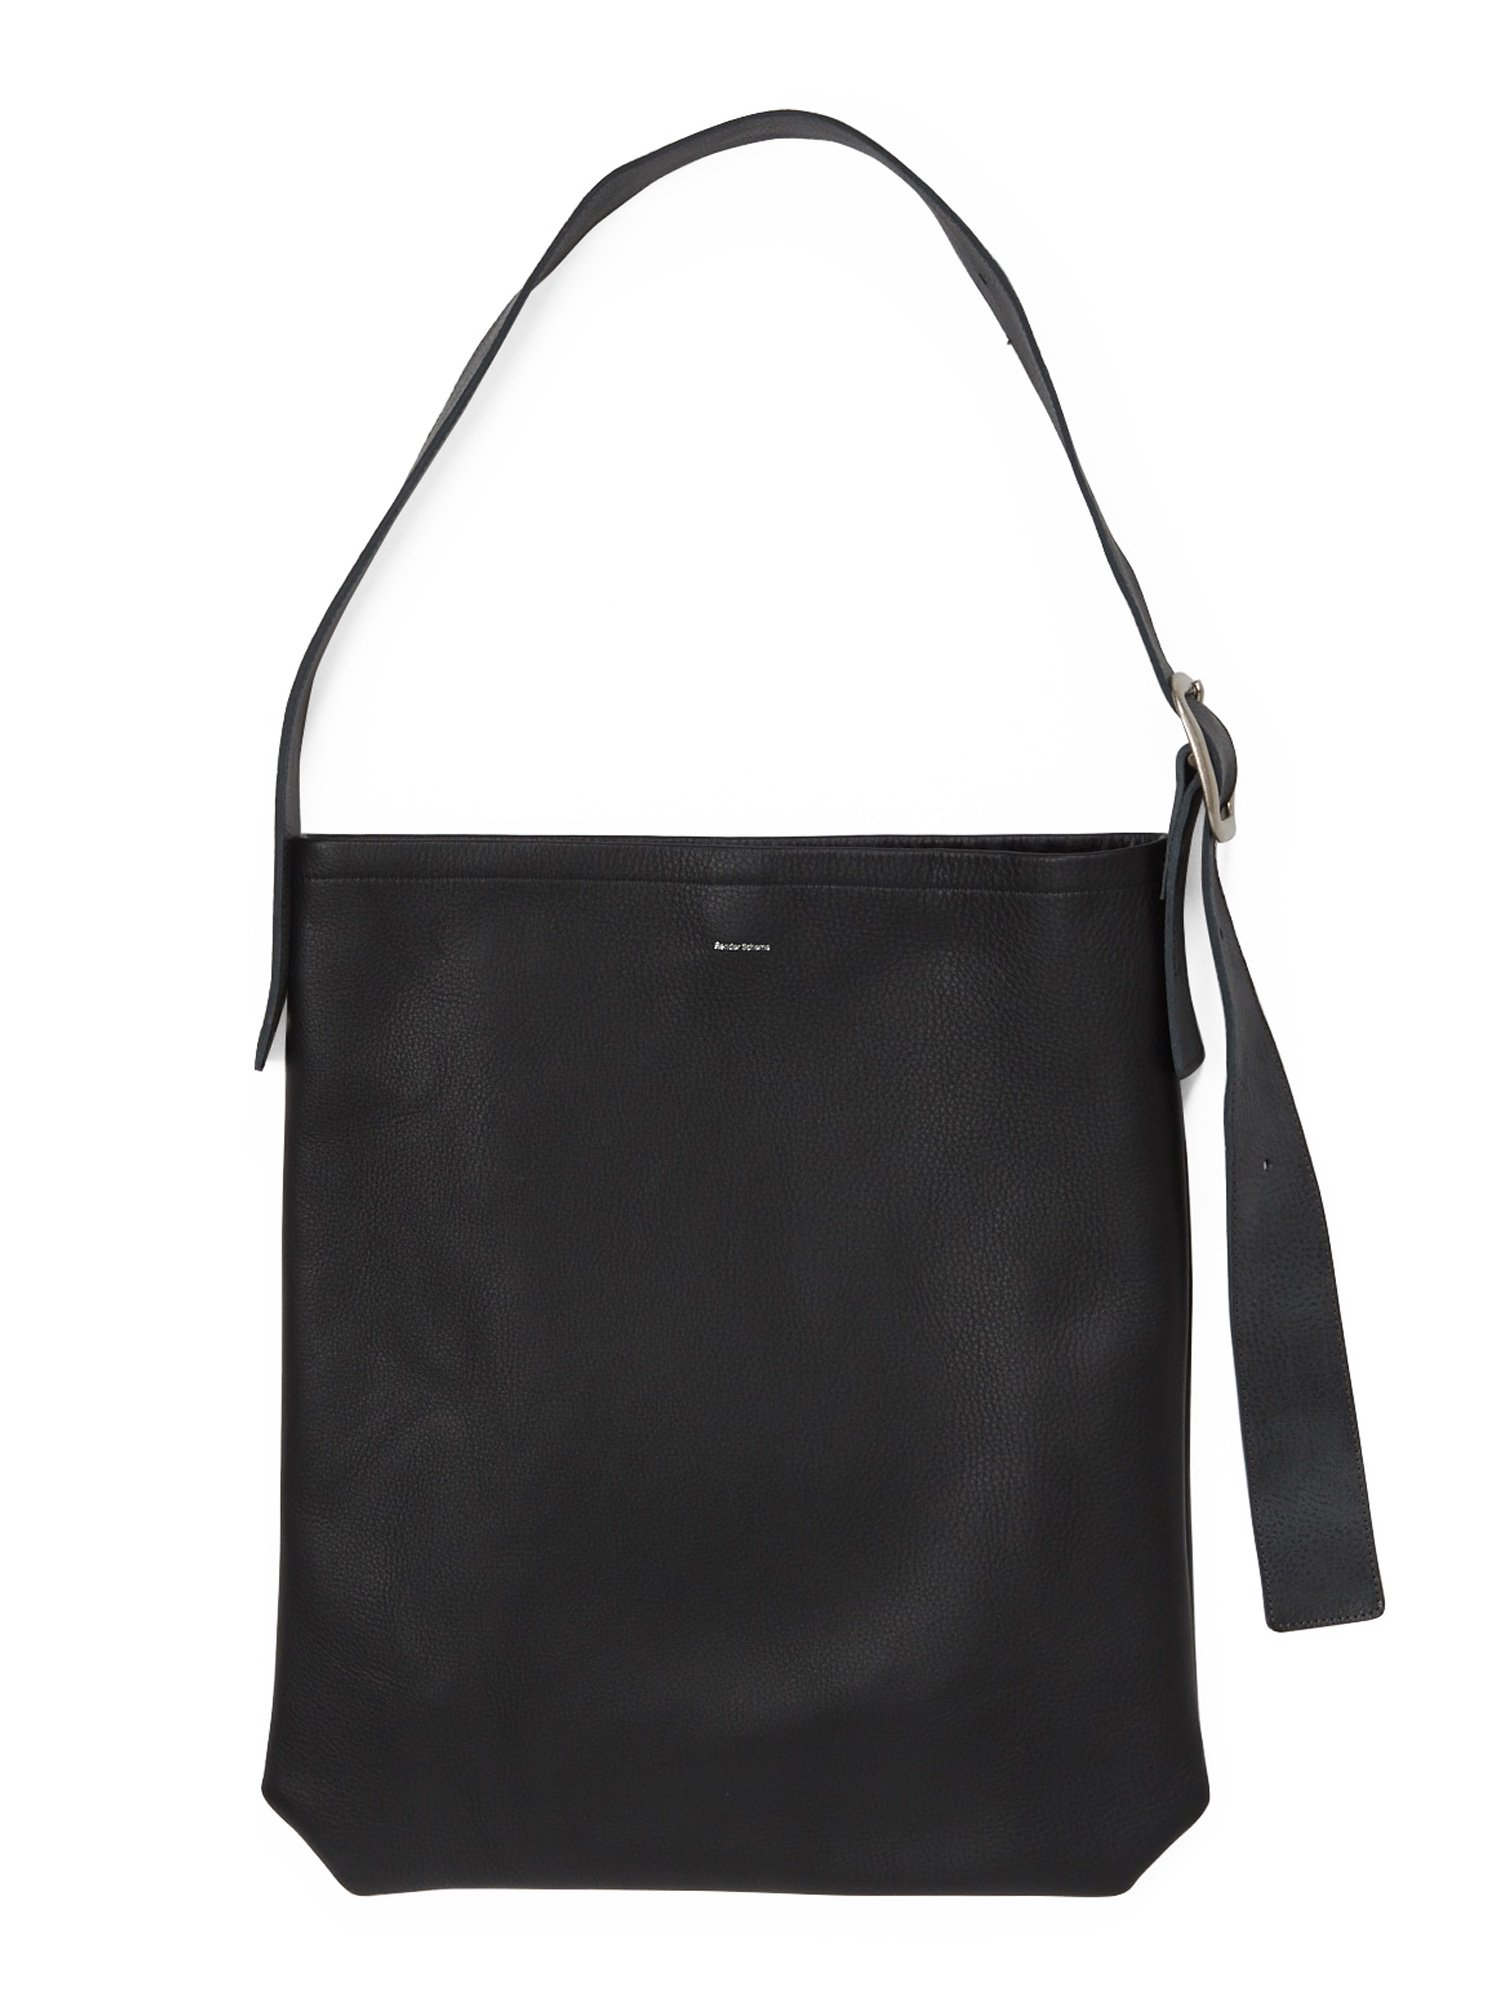 【Hender Scheme】ONE SIDE BELT BAG (BLACK)_1